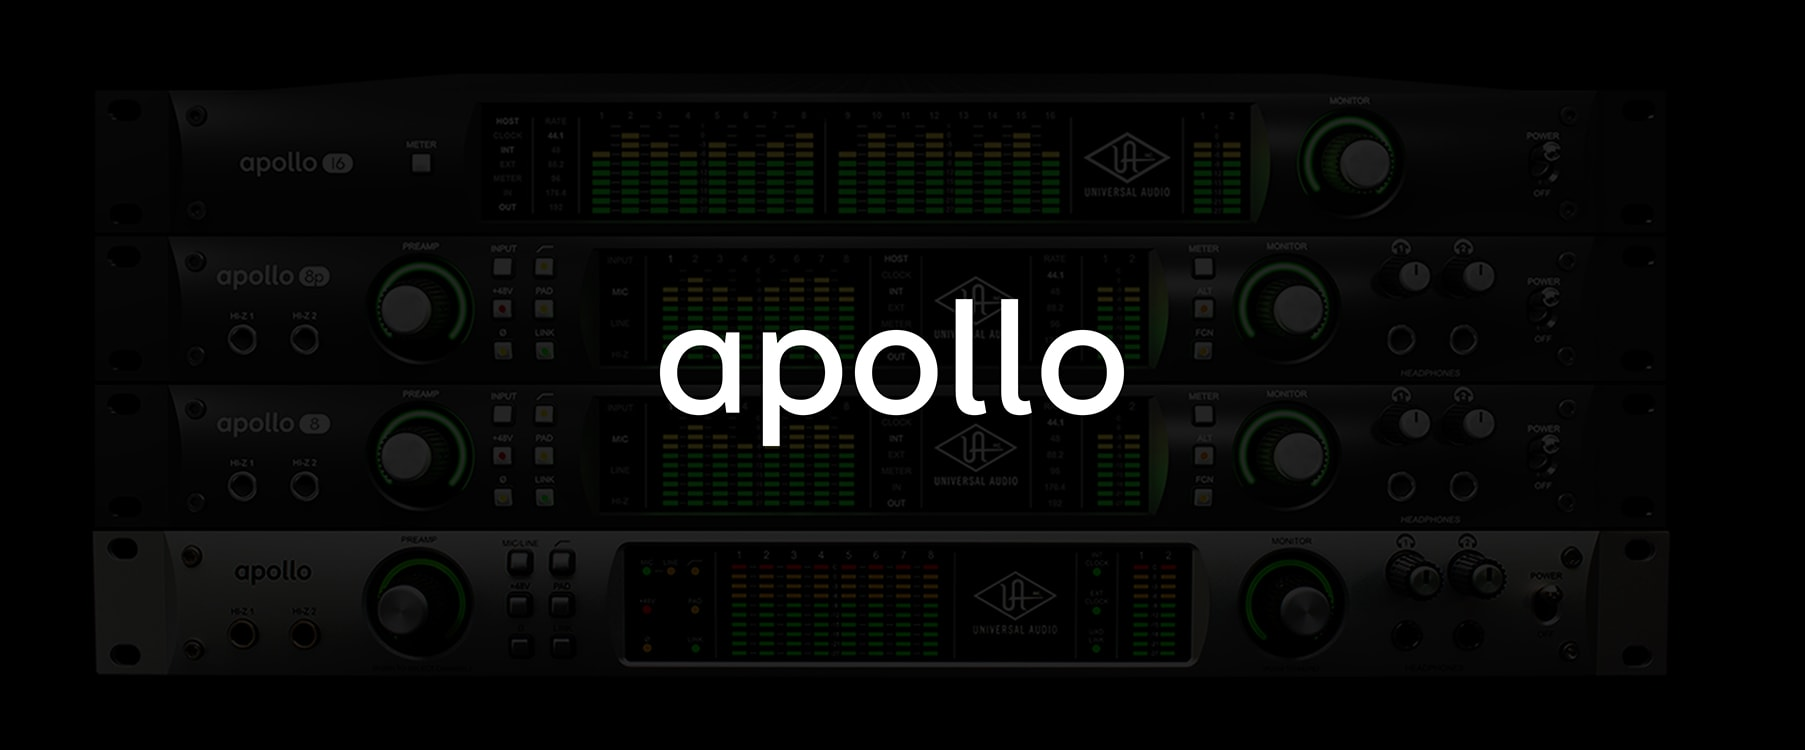 Apollo High Resolution Audio Interface Basics & FAQ